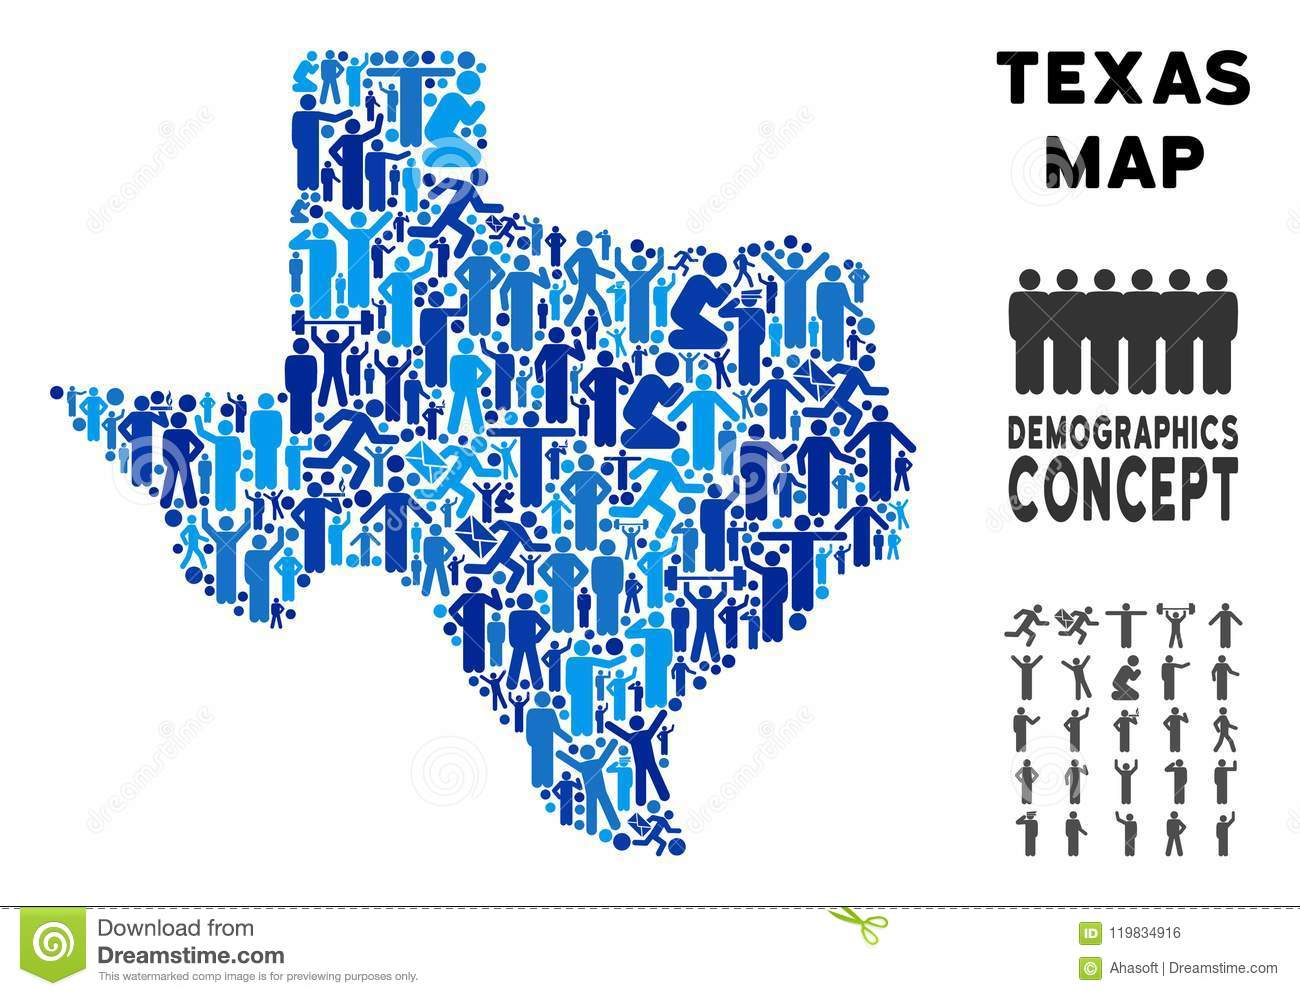 Population Map Of Texas.Demographics Texas Map Stock Vector Illustration Of Land 119834916